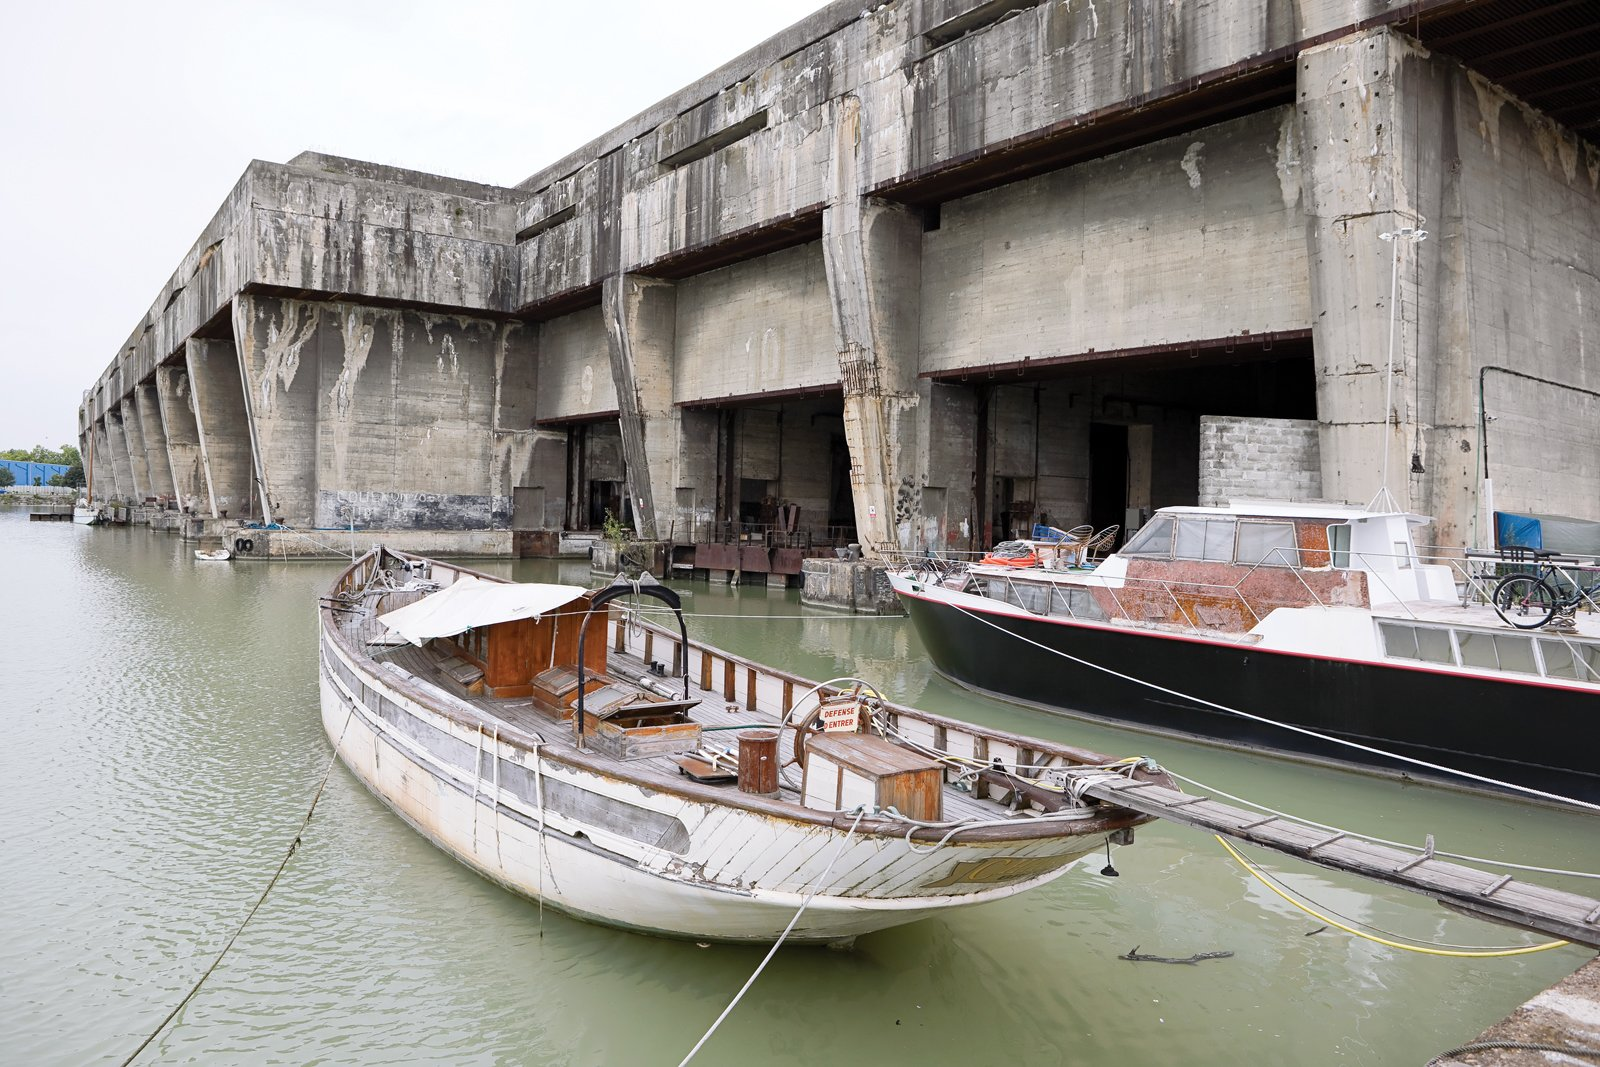 The massive concrete Base Sous-Marine was built during World War II to house German submarines but has become a popular and singularly dramatic venue for exhibitions and performances.  Photo 8 of 9 in Bordeaux, France